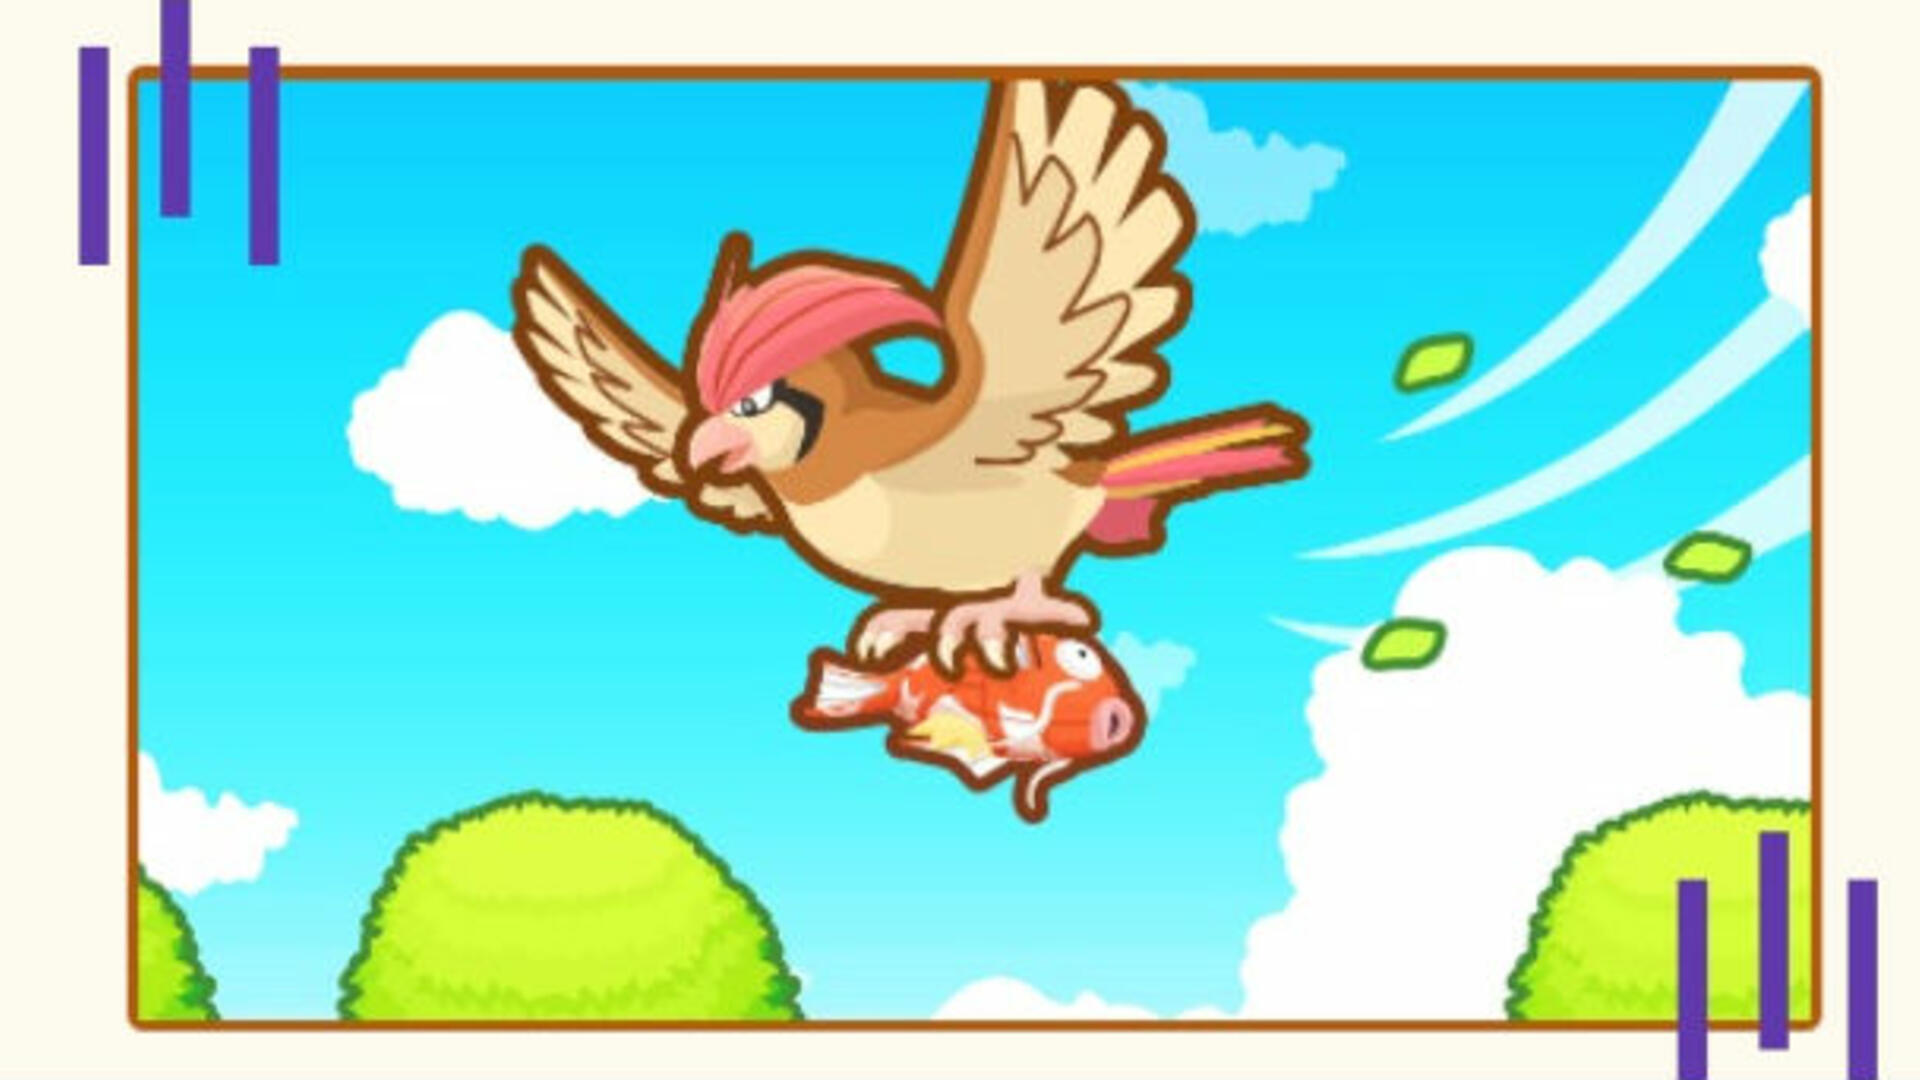 Magikarp Jump Is All About a Village Trying to Make the Most out of Its Crummy Local Pokémon, and That's Awesome